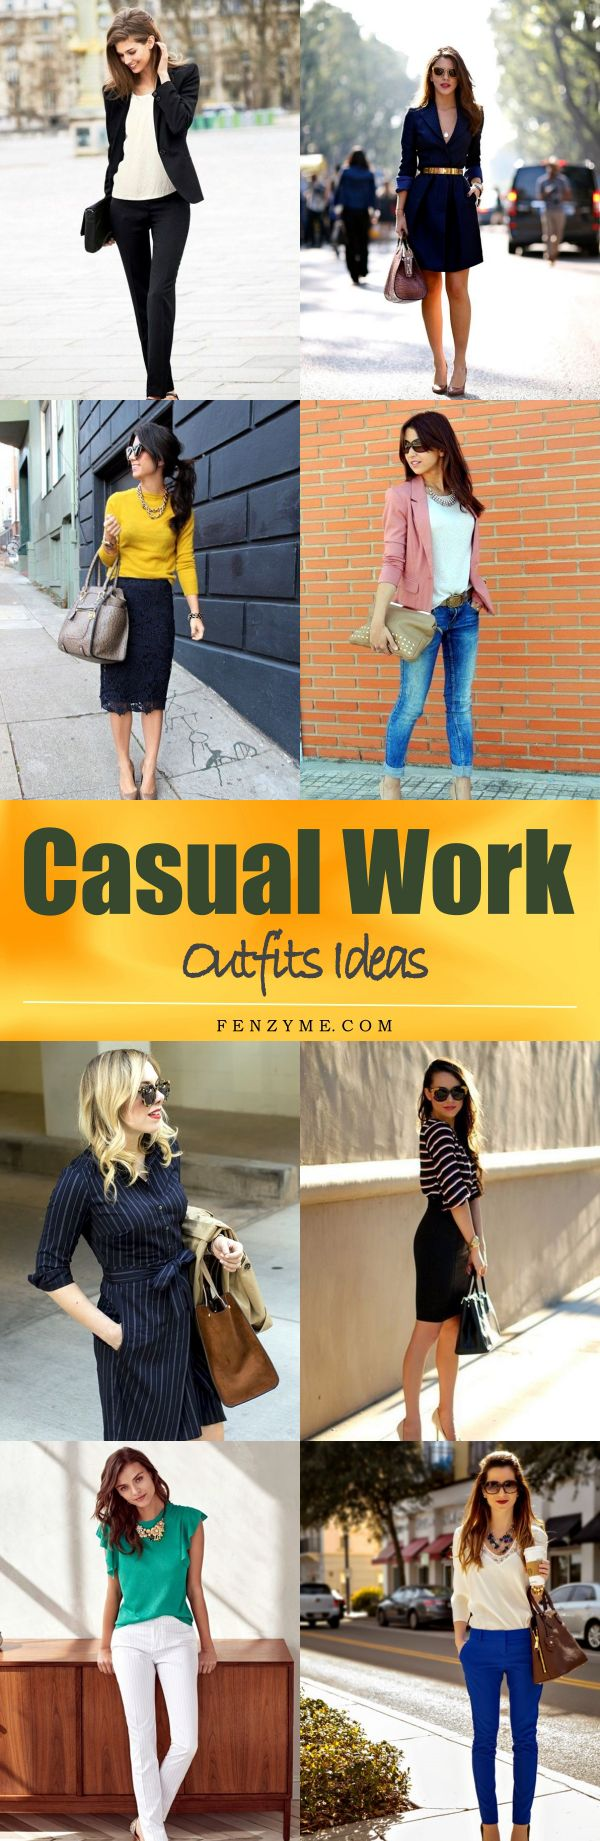 casual-work-outfits-ideas-007